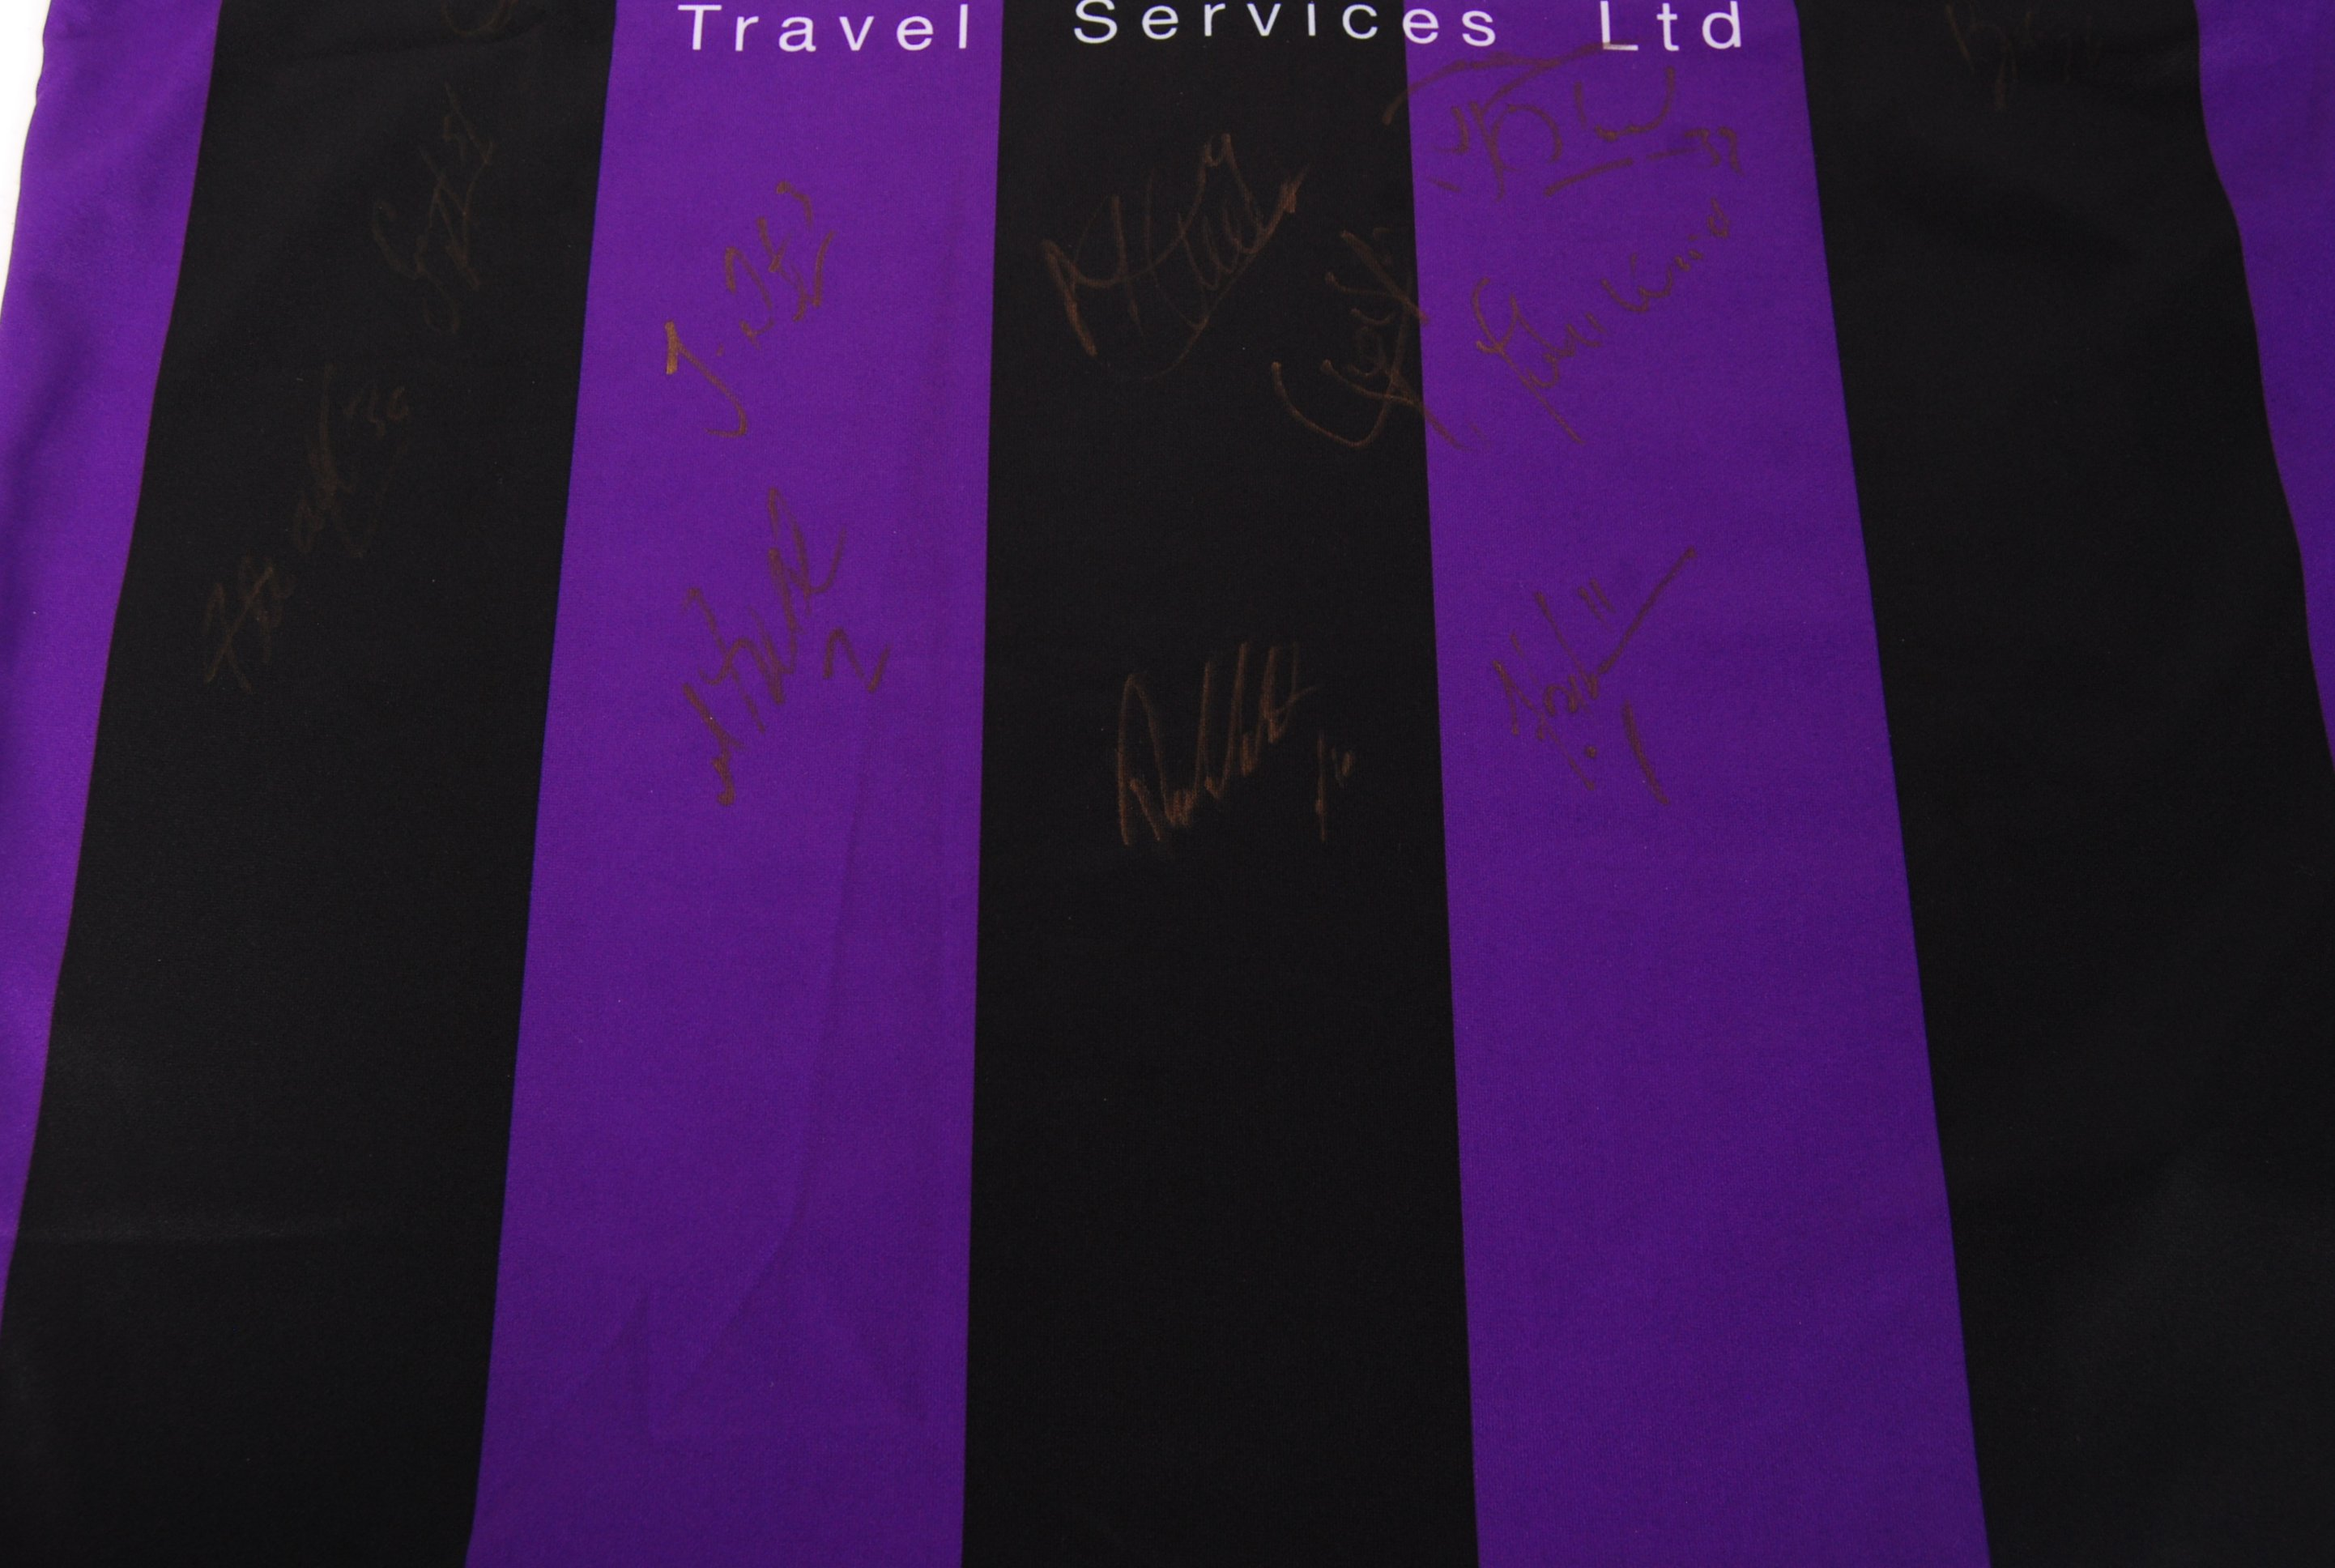 BRISTOL ROVERS FOOTBALL AUTOGRAPHED SHIRT - Image 3 of 4